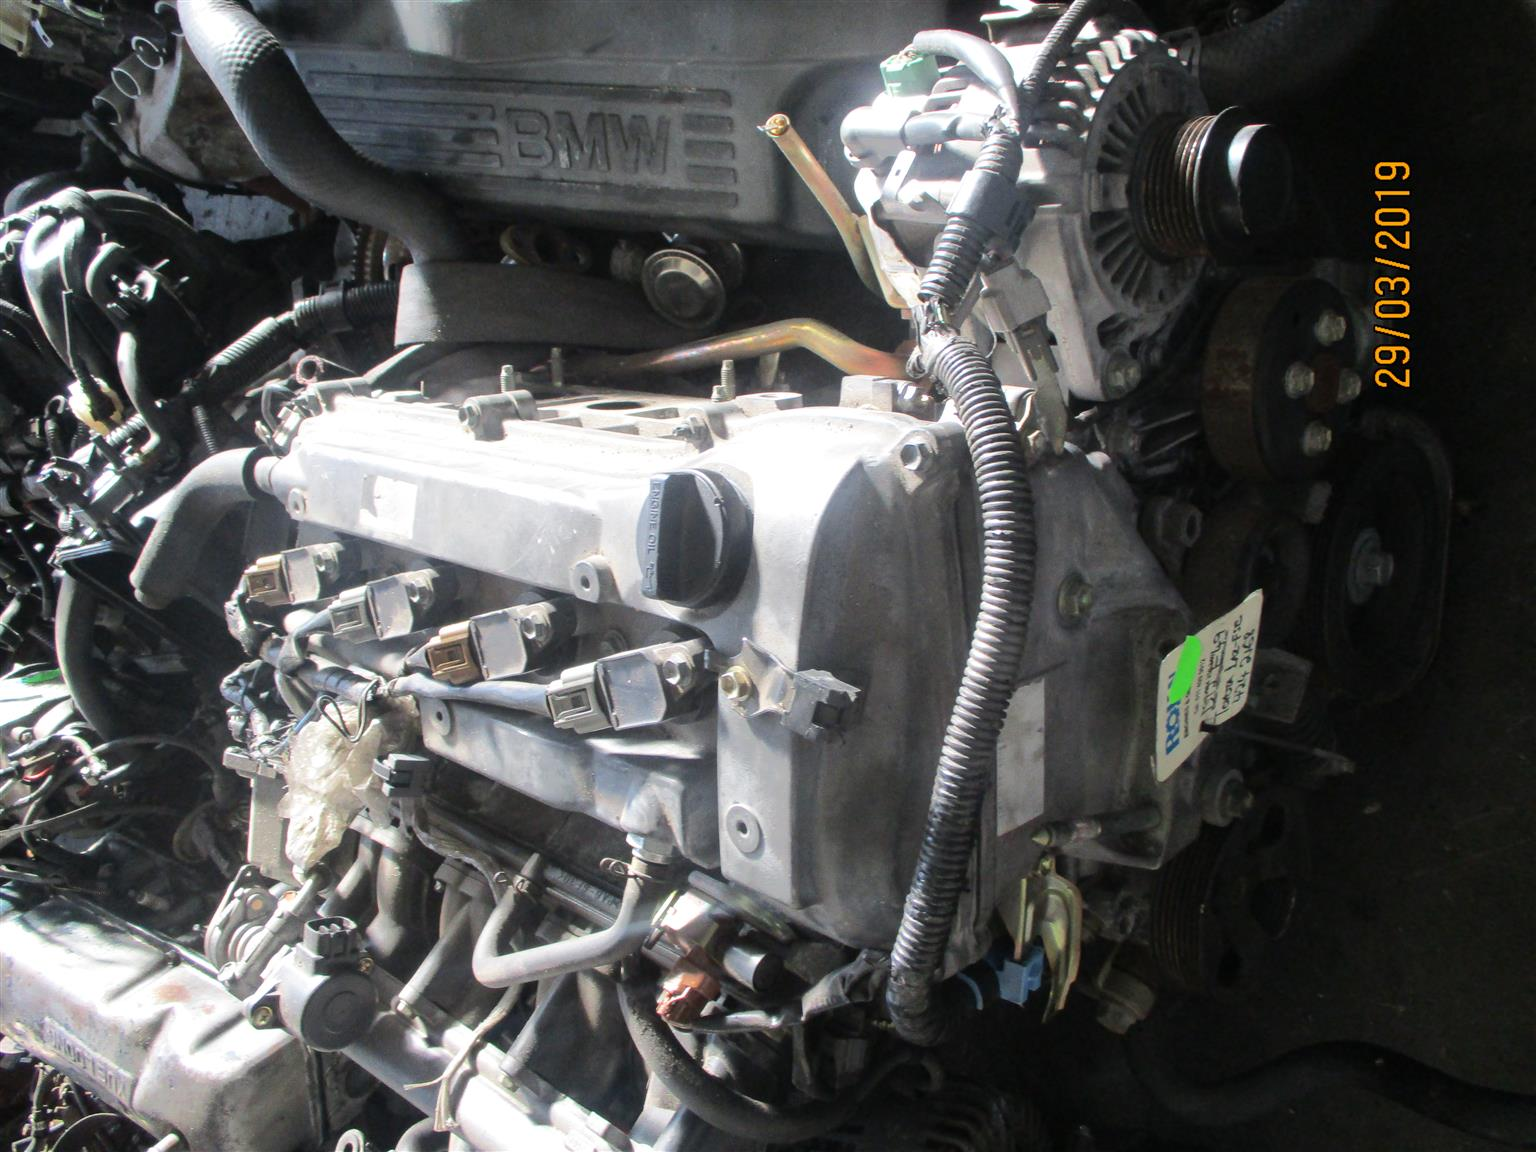 Nissan Hardbody 2 4 (ka24) engine for sale